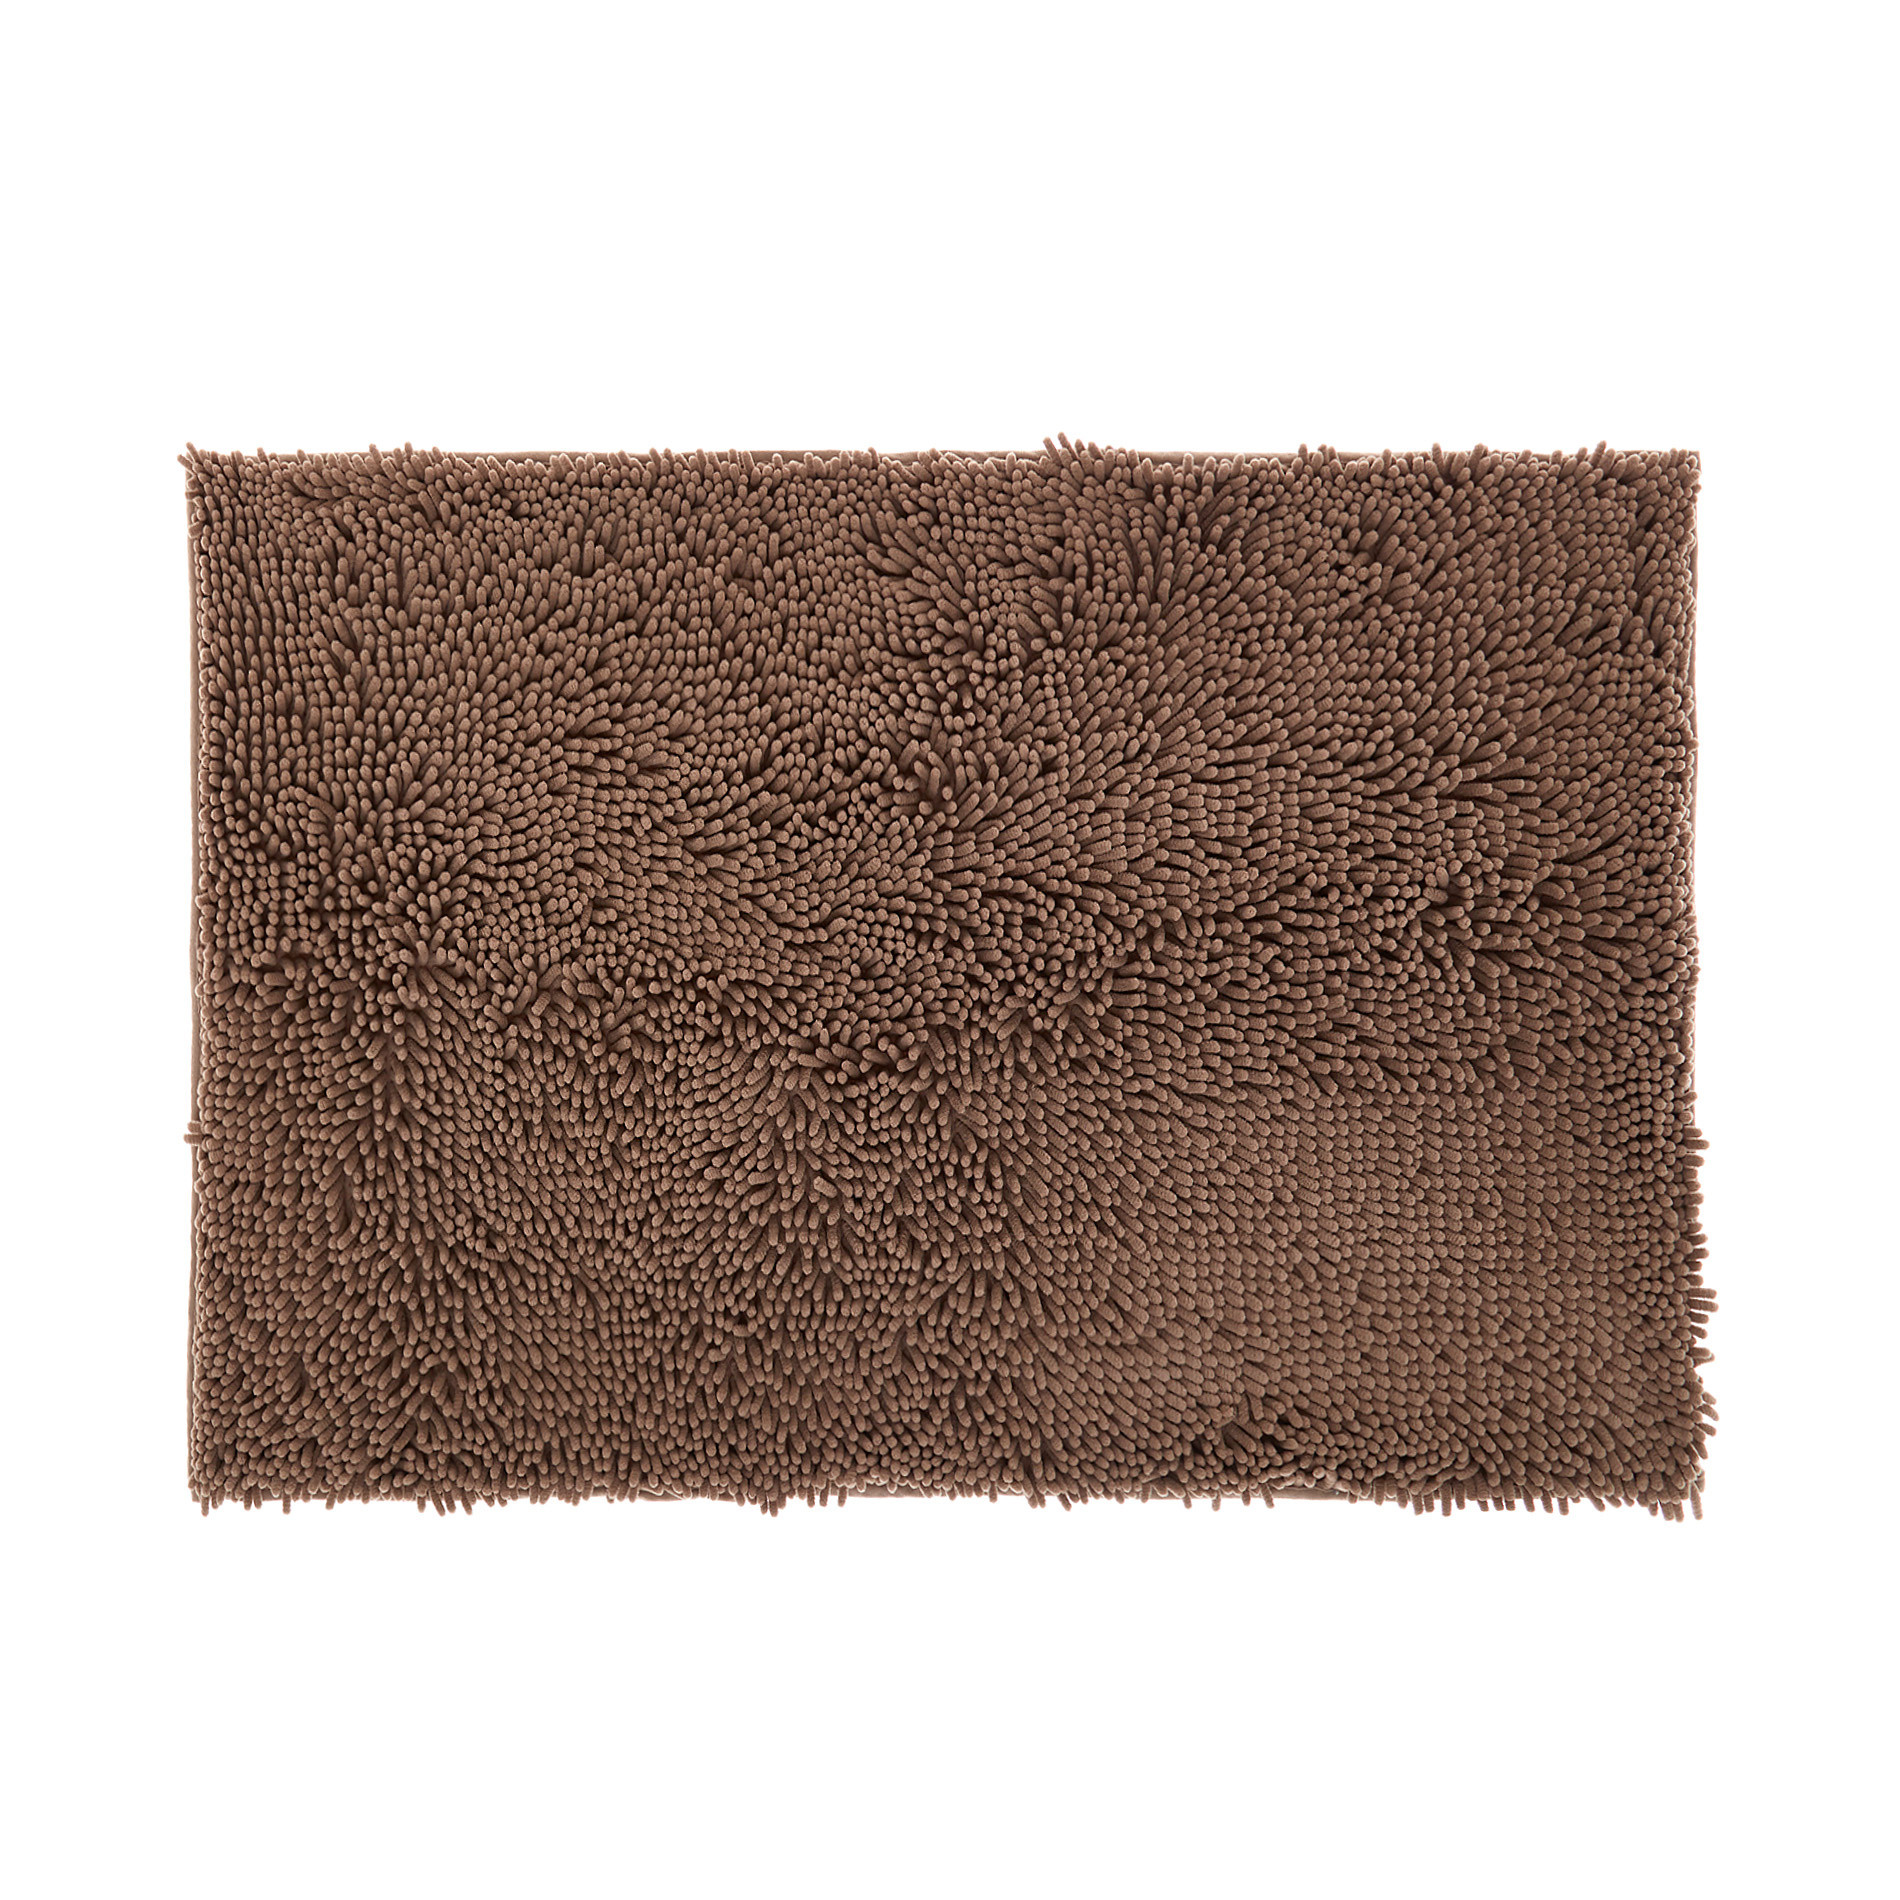 Tappeto bagno microfibra shaggy, Beige scuro, large image number 0